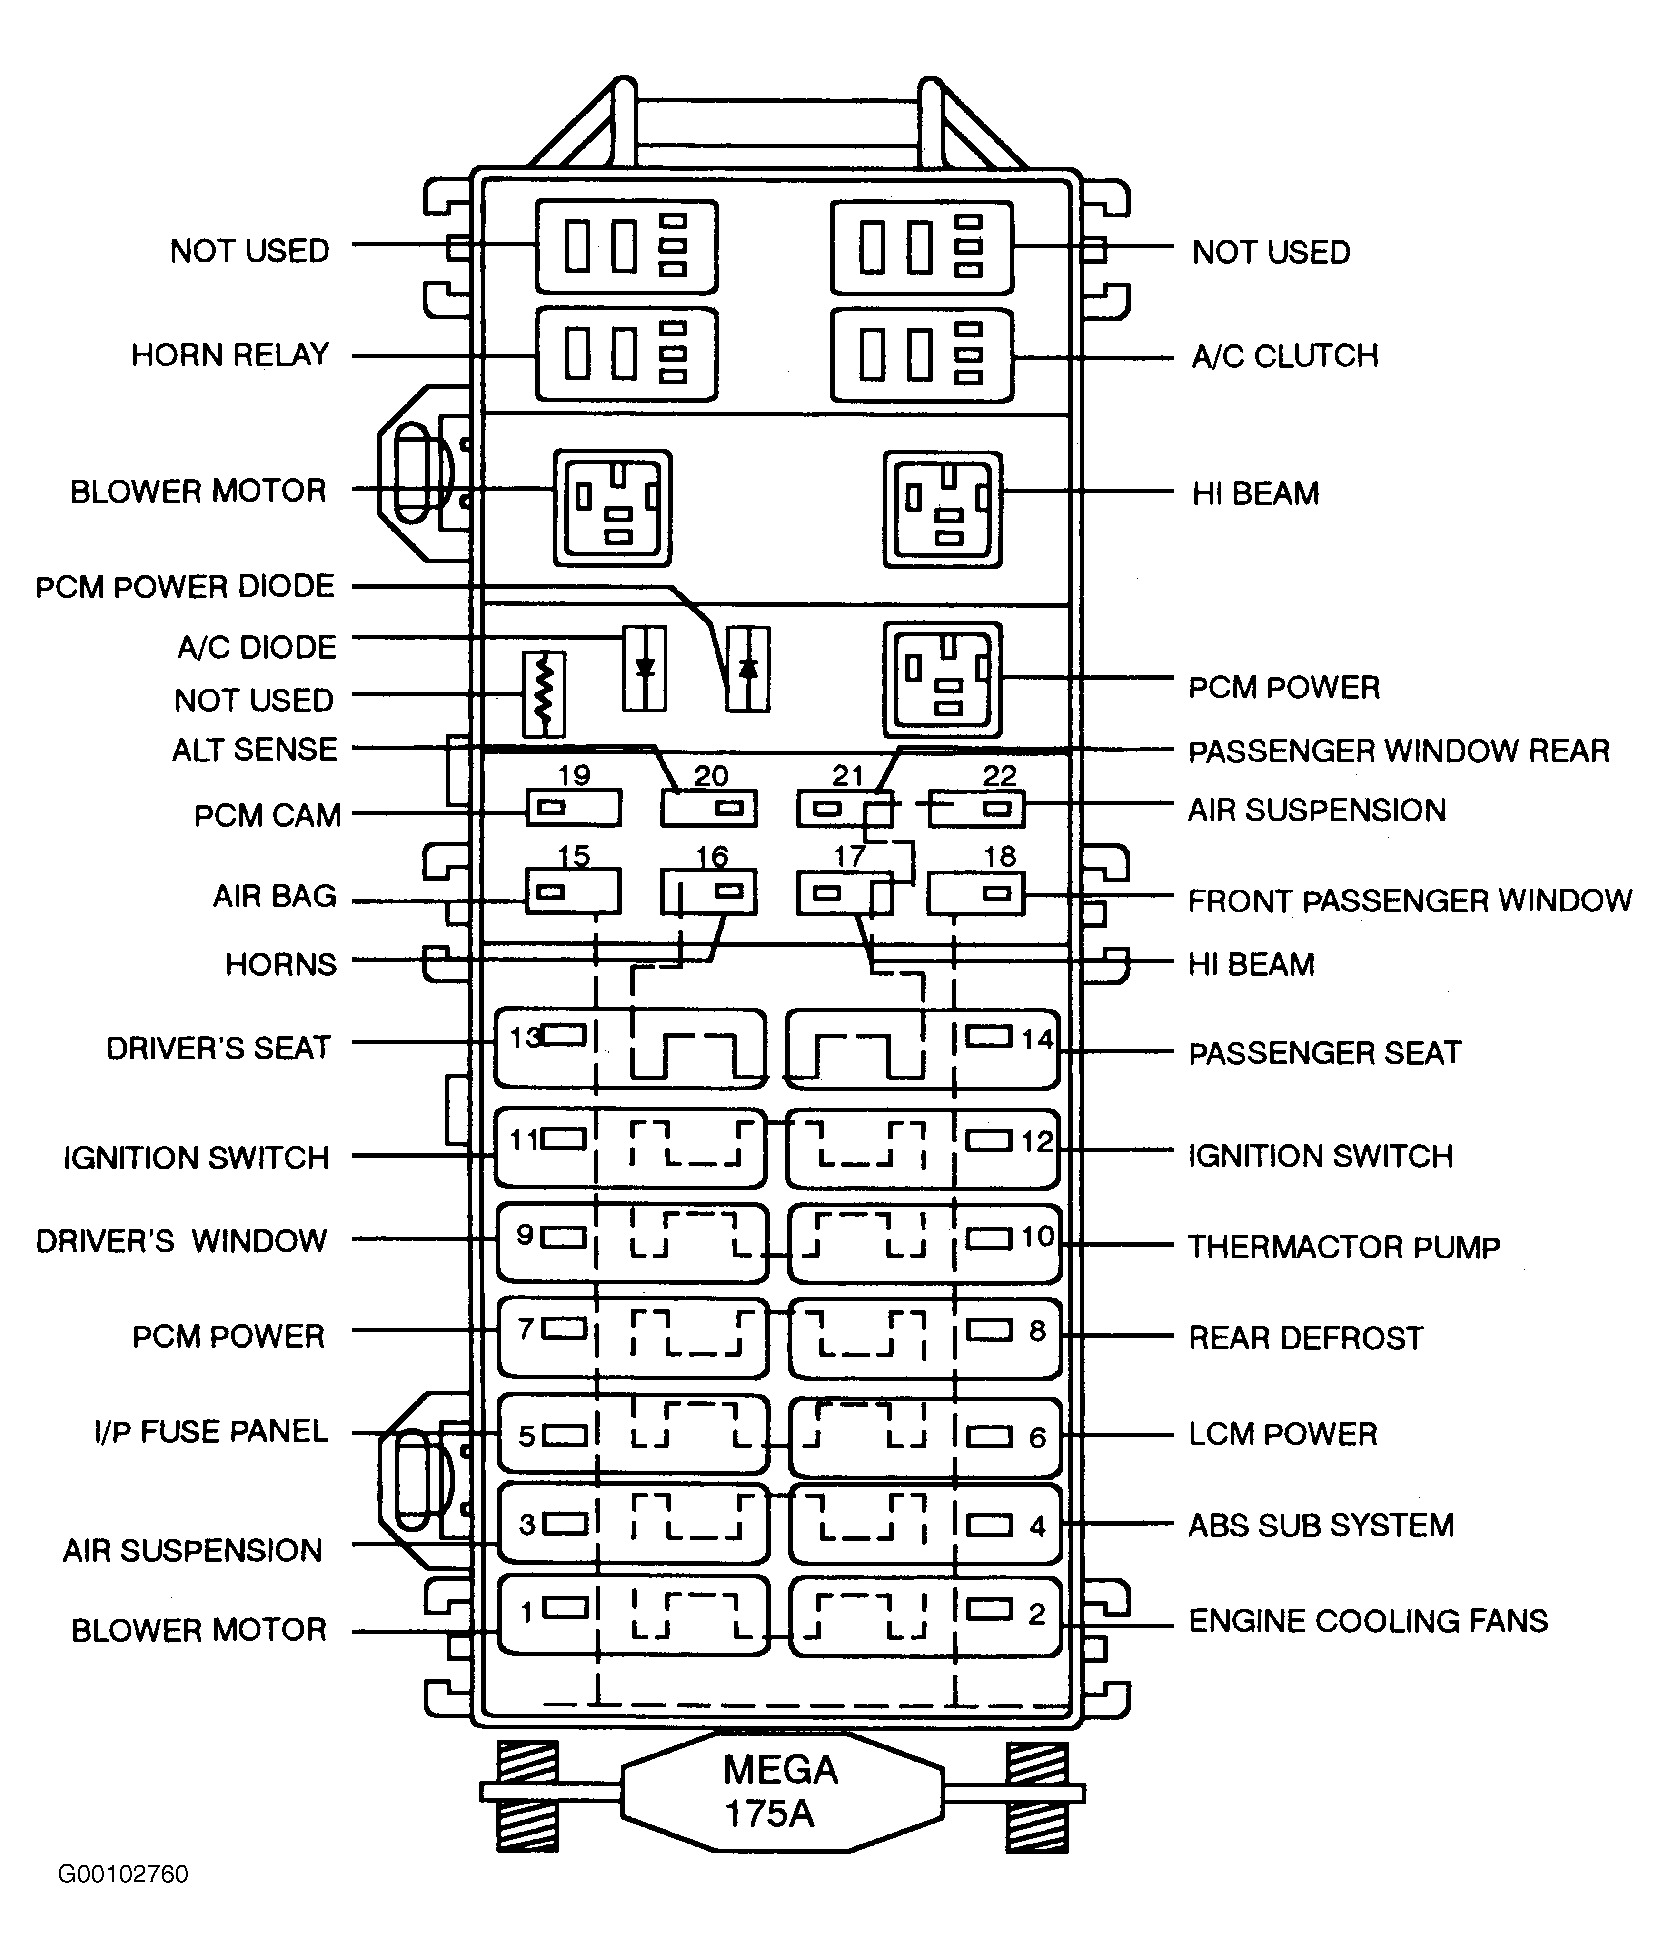 2001 Lincoln Continental Fuse Box Diagram on 1965 lincoln continental wiring diagrams